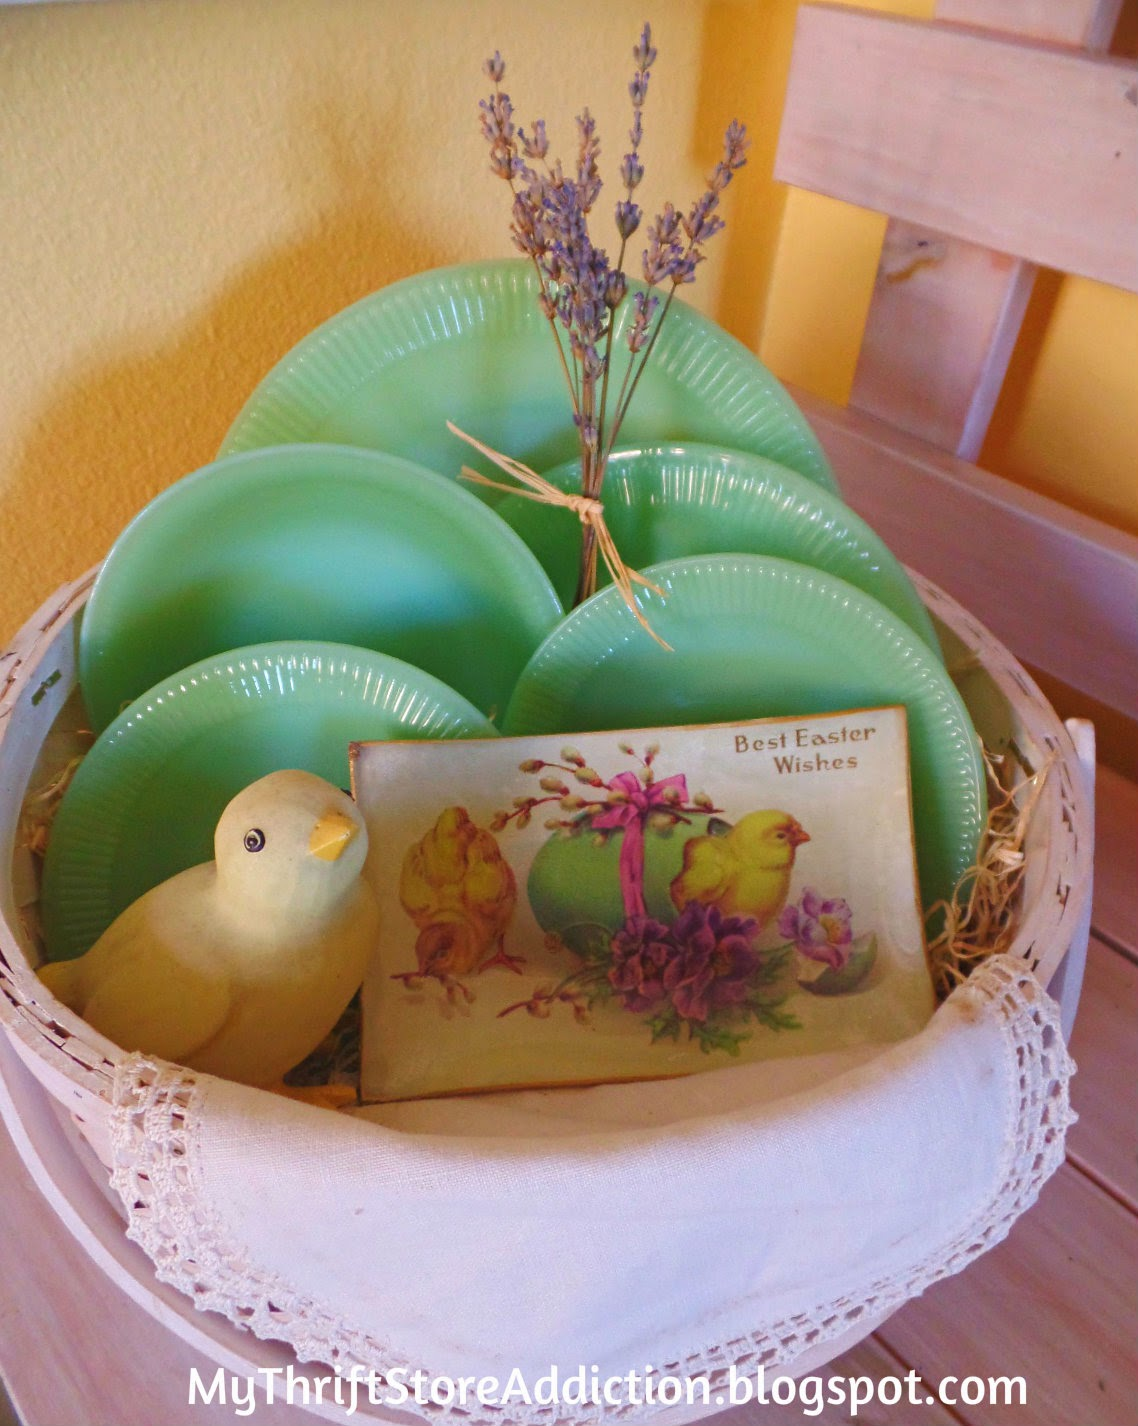 A basket of jadeite and lavender